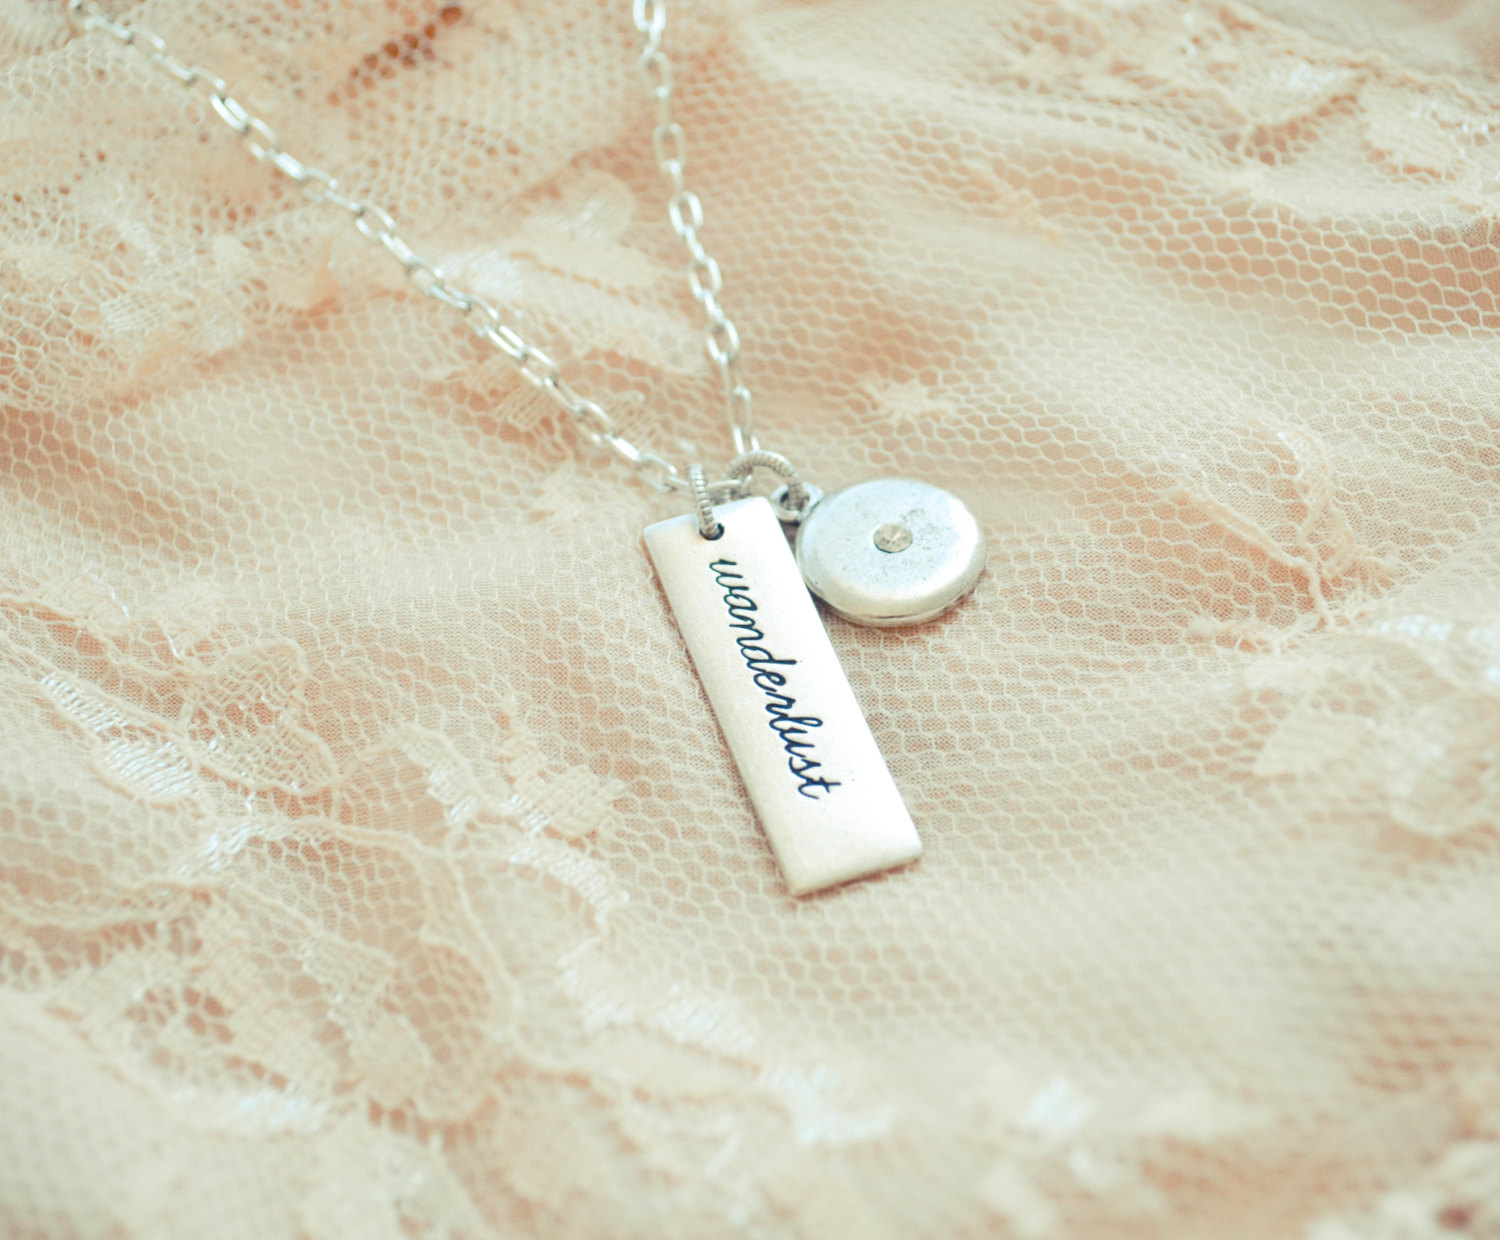 wanderlust necklace with heart | gifts bridesmaids travel | https://emmalinebride.com/gifts/gifts-bridesmaids-travel